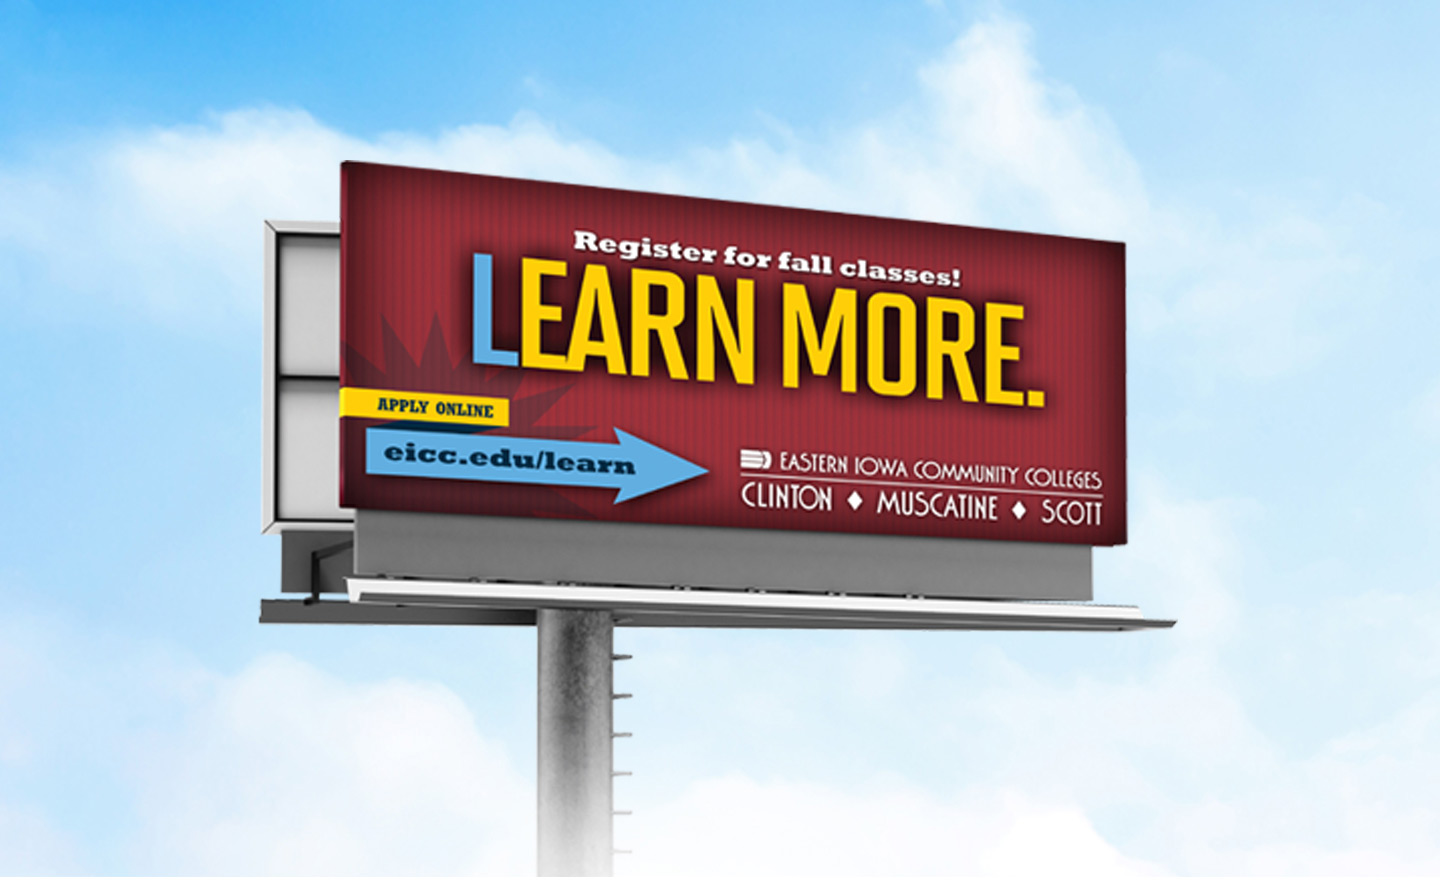 Eastern Iowa Community College Billboard